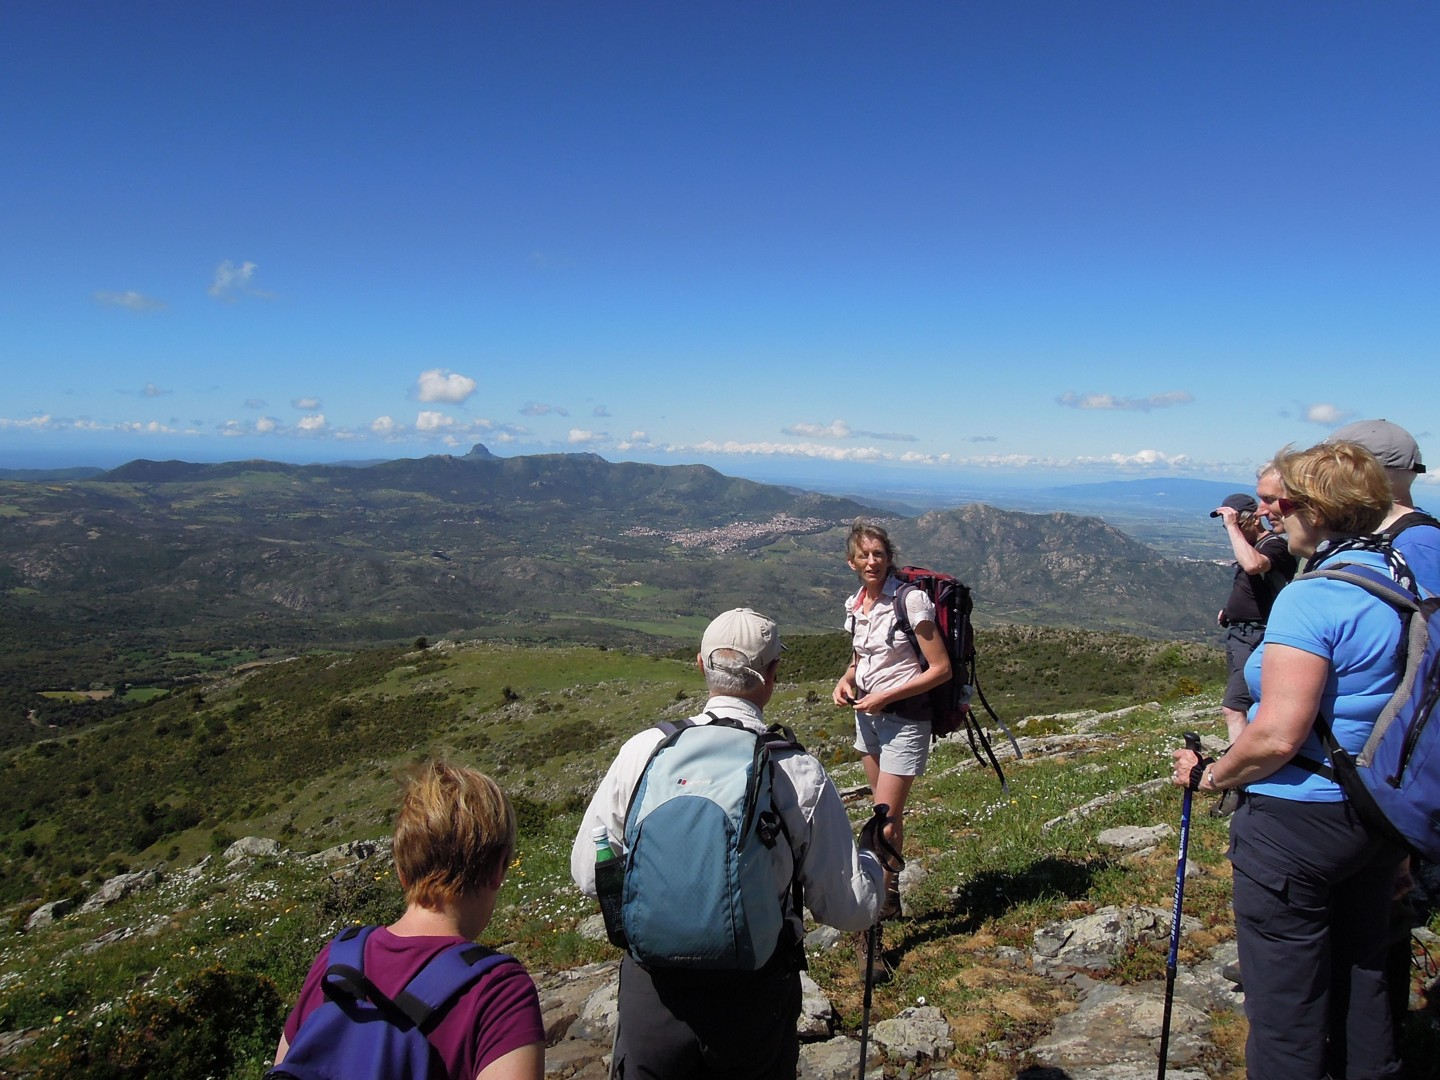 Mt Linas.jpg - Sardinia - South West Coast and Mountains Walk - Guided Holiday - Walking